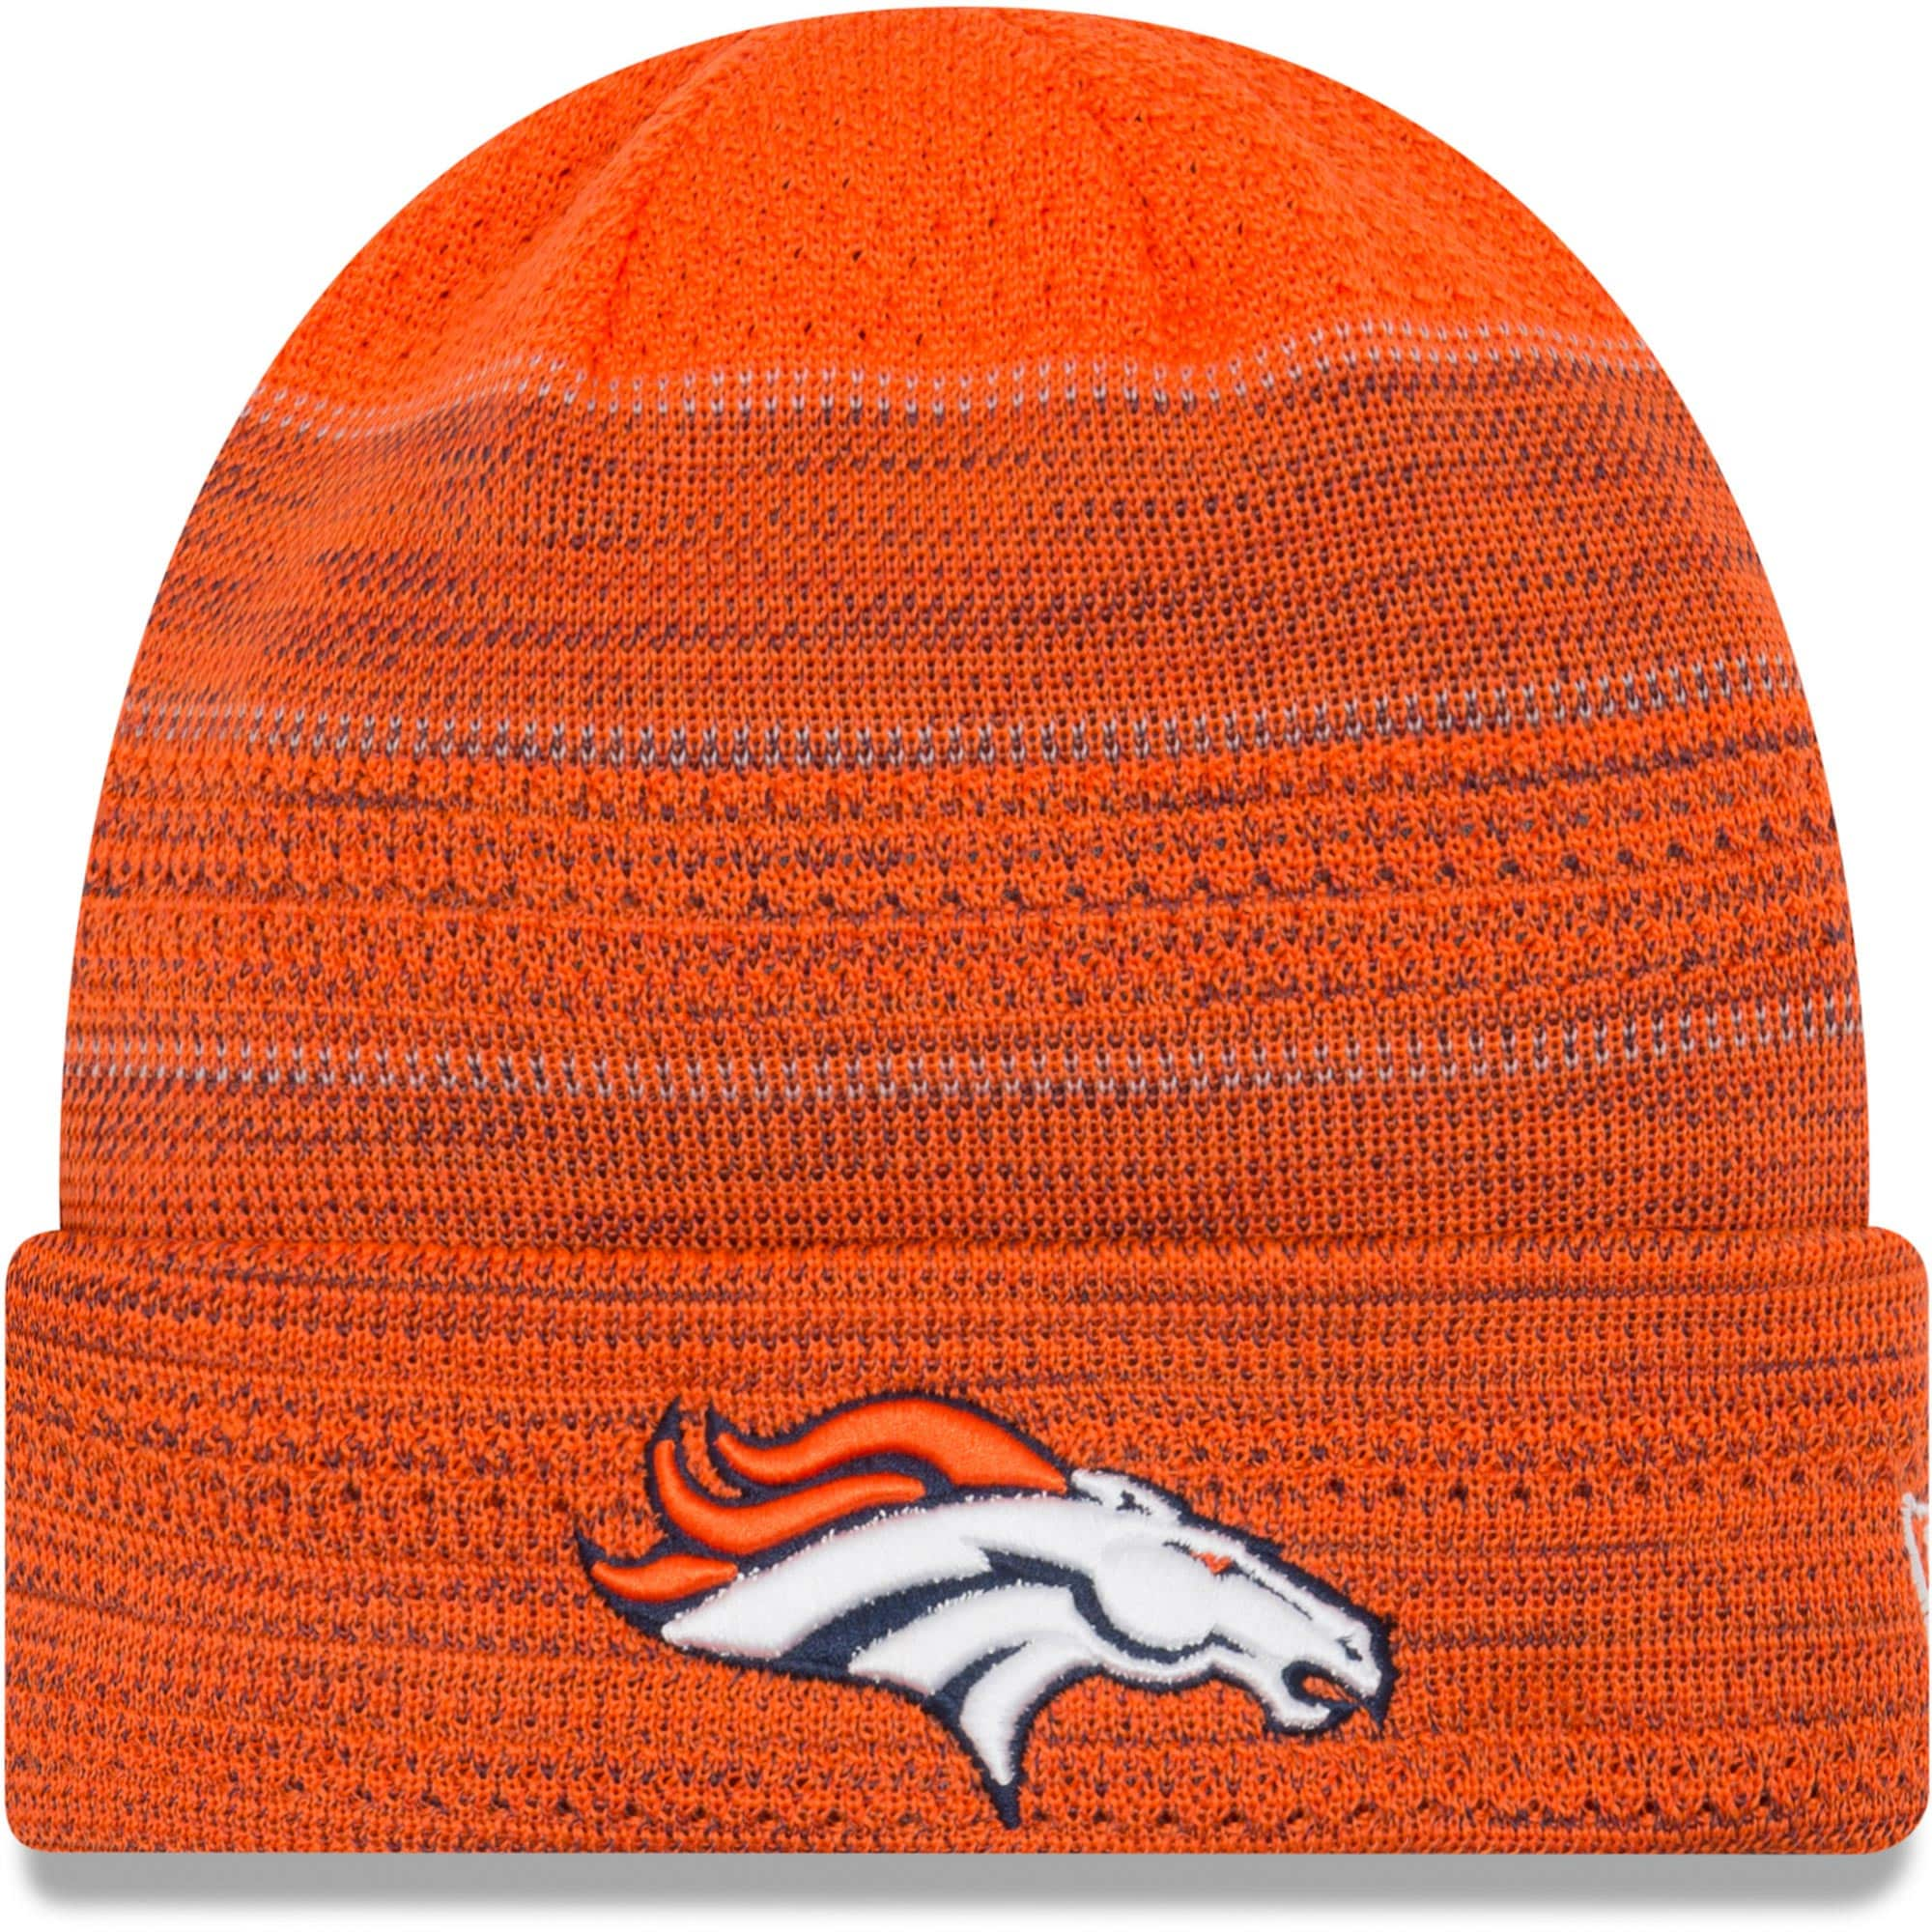 Denver Broncos New Era 2017 Sideline Official TD Knit Hat - Orange